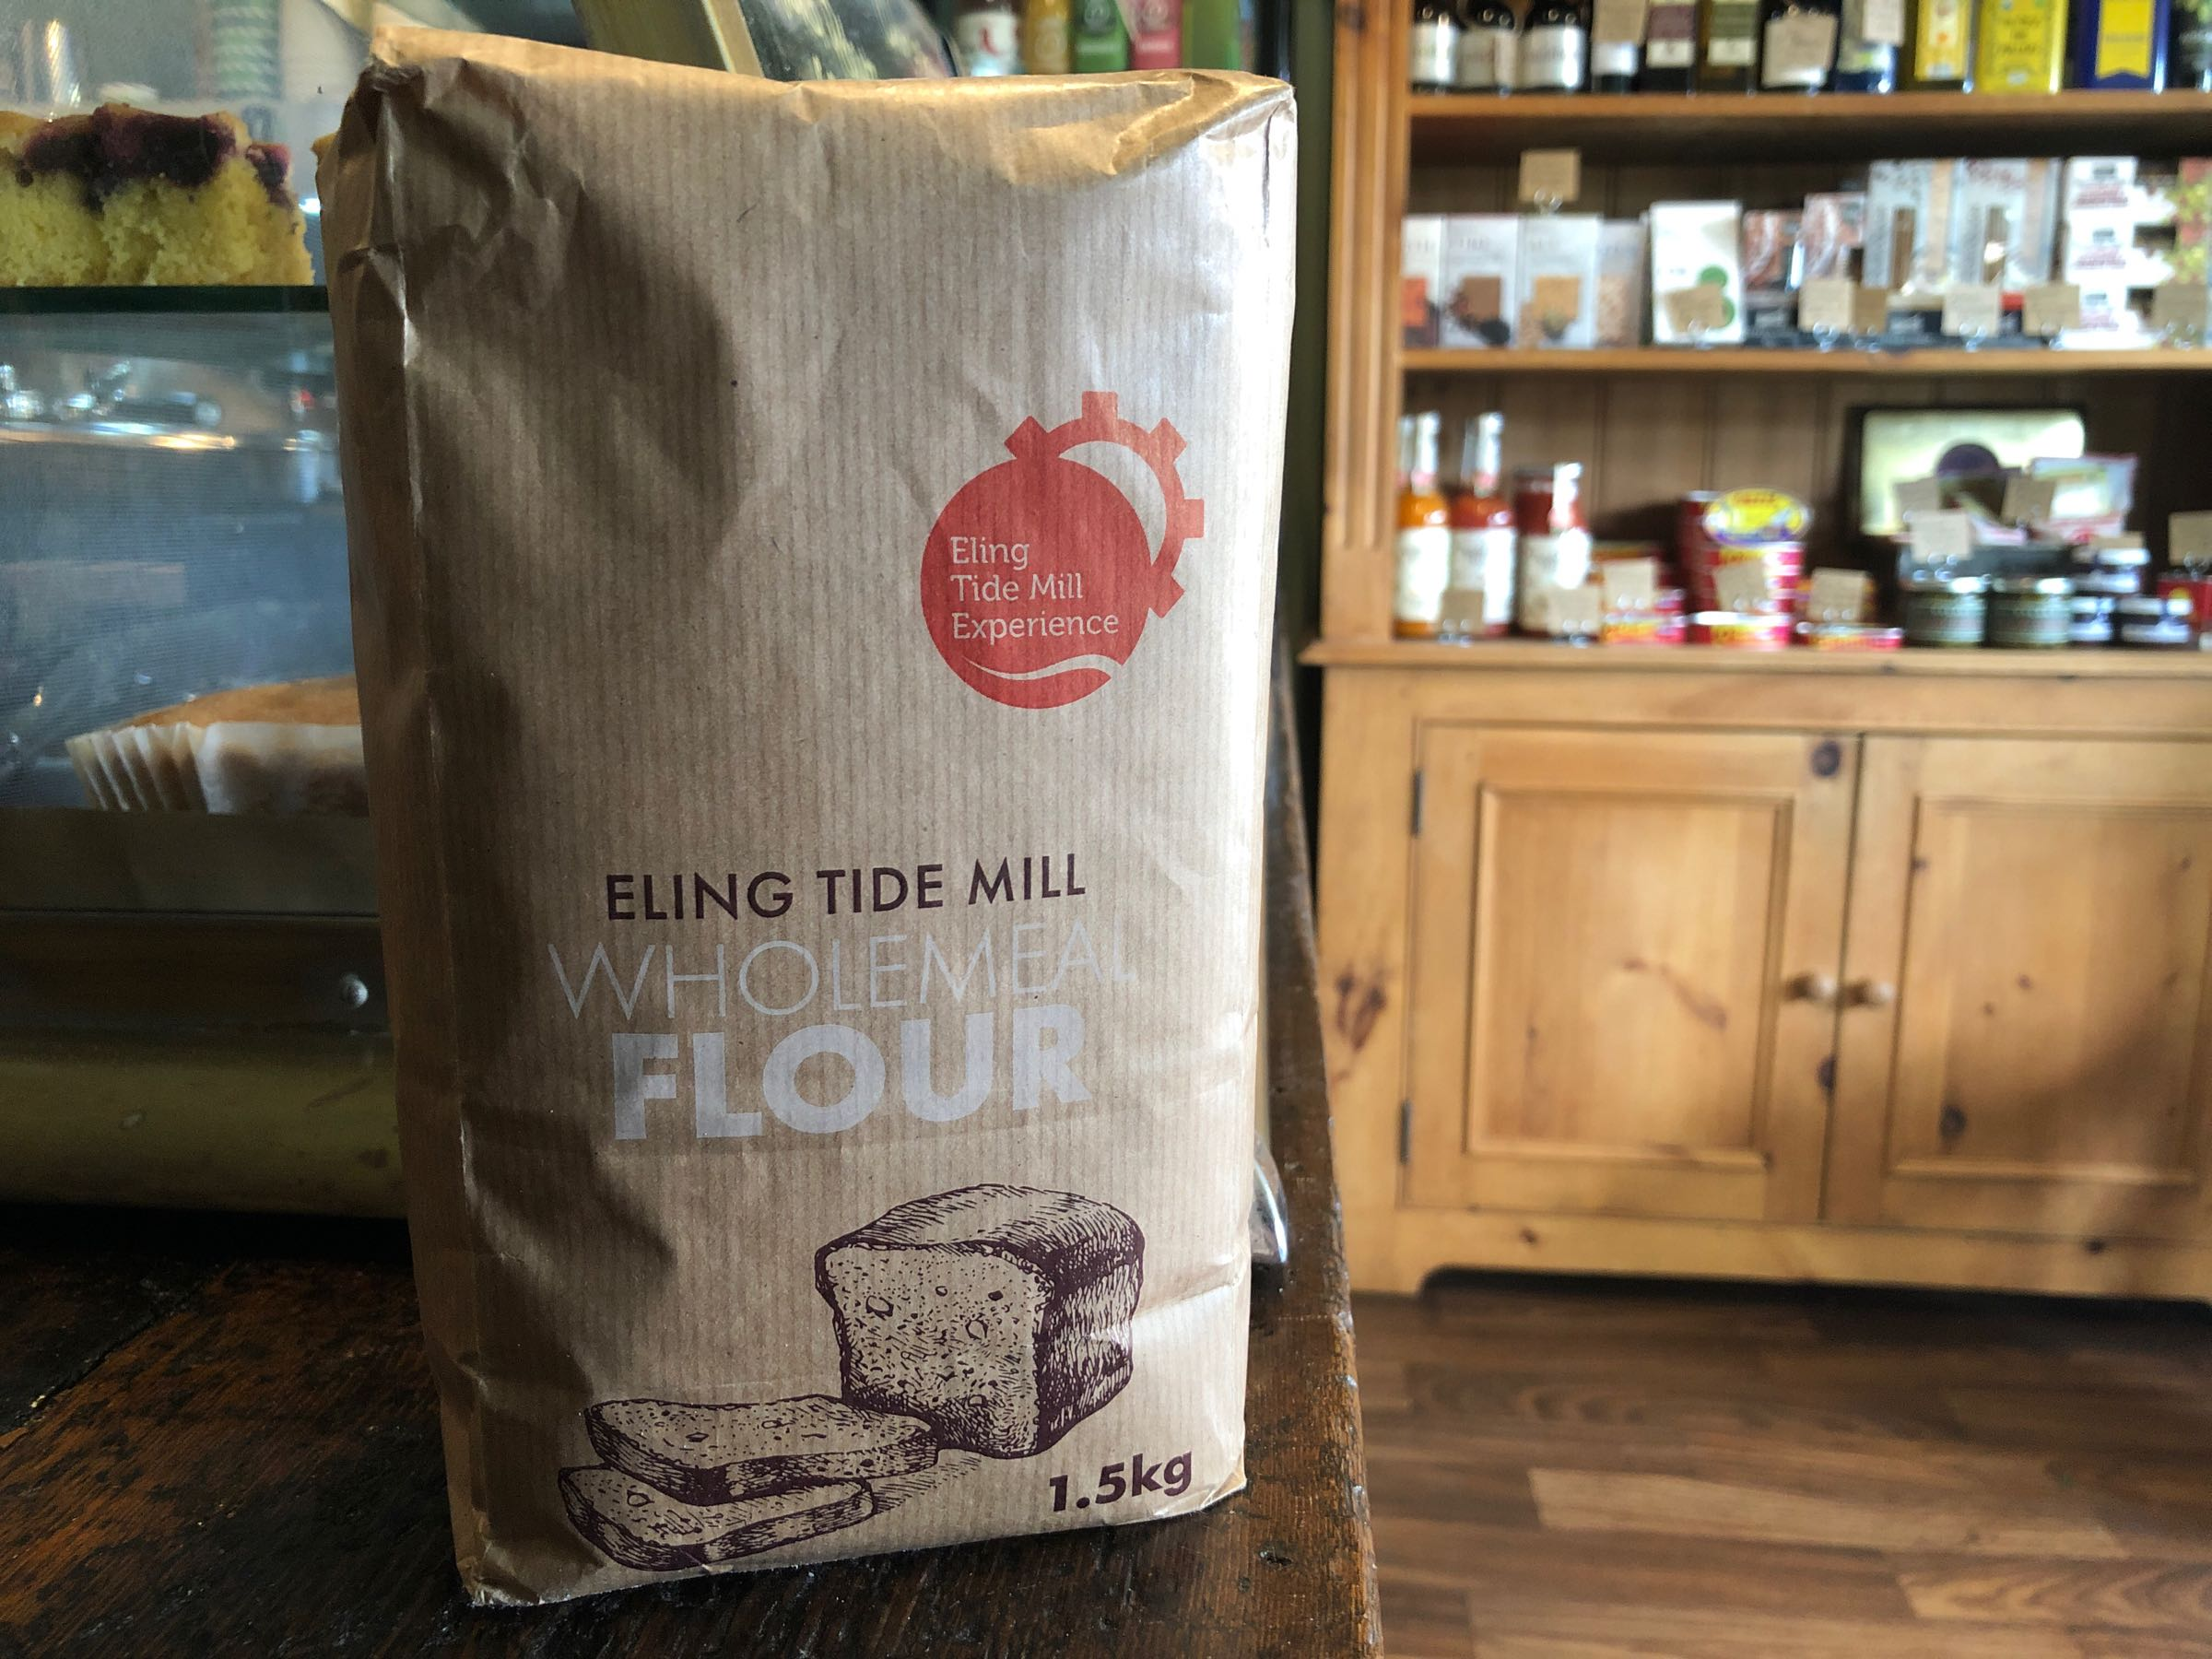 Eling Tide Mill Wholemeal Flour